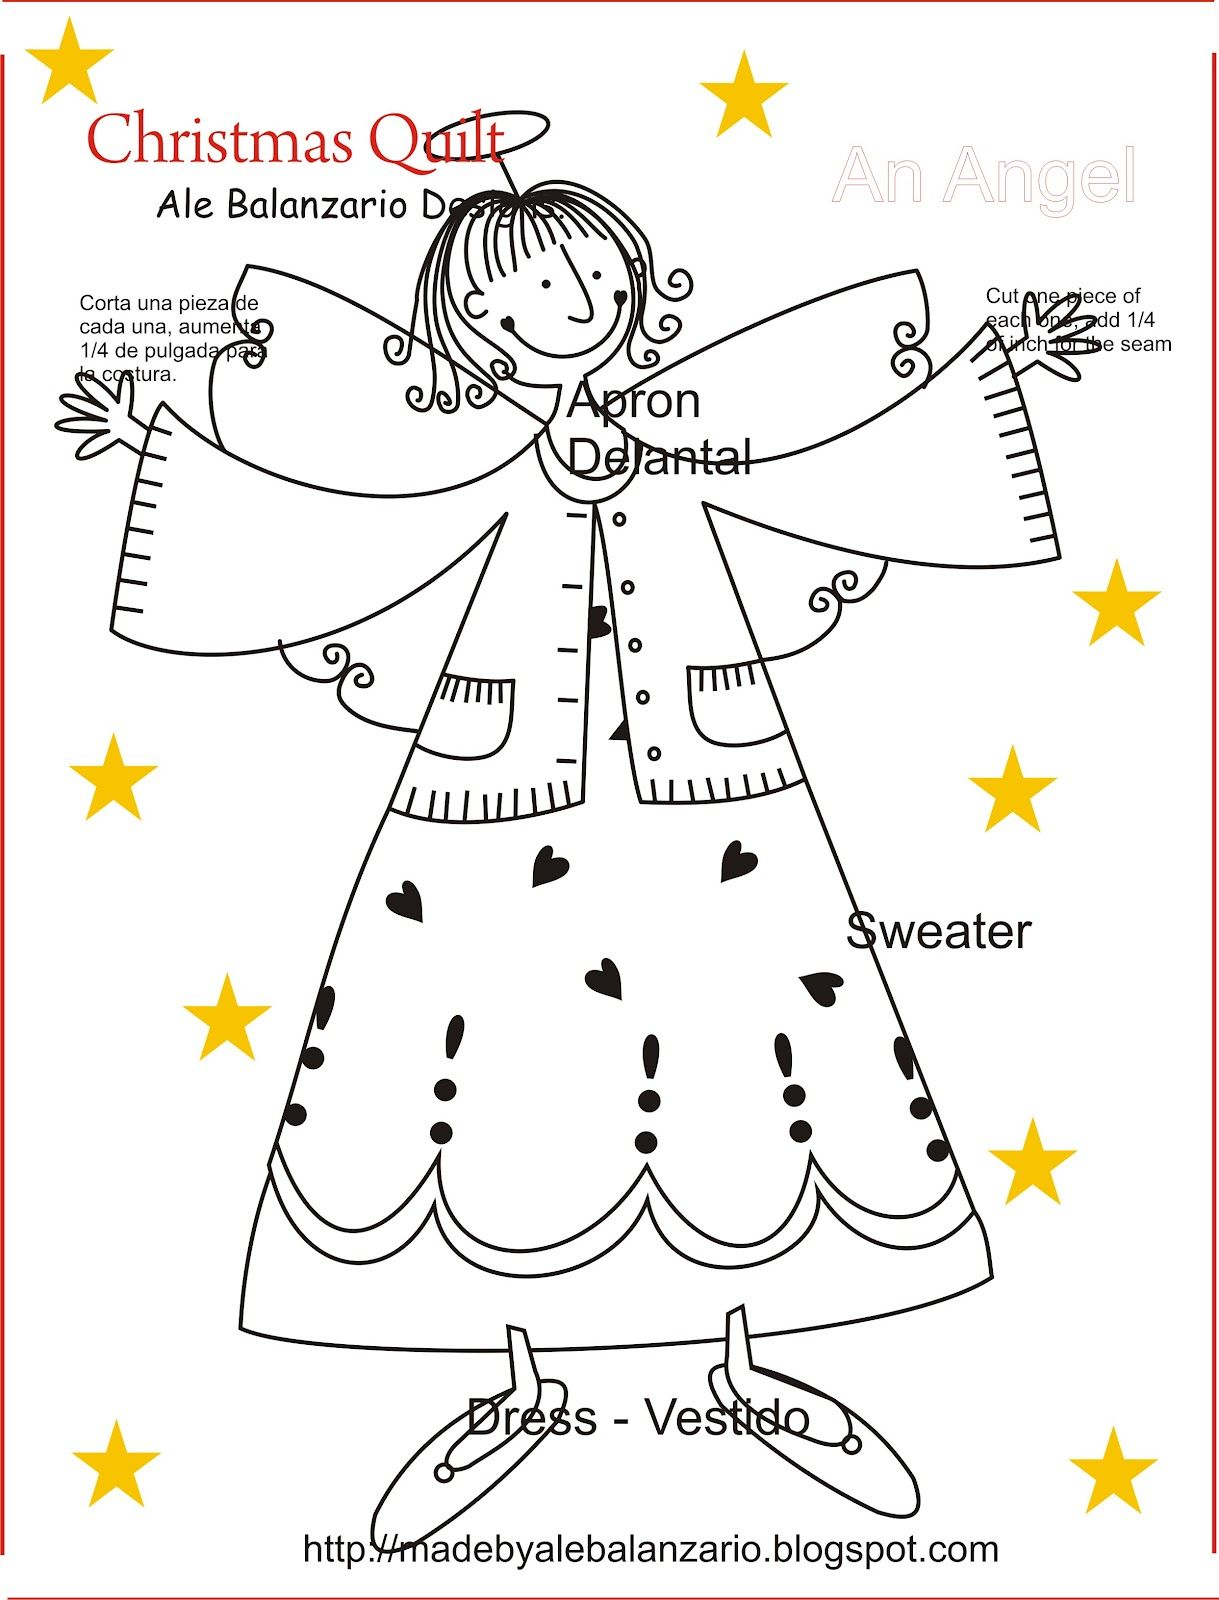 Christmas Quilt, An Angel!   Cross-Stitch and Embroidery   Pinterest ...